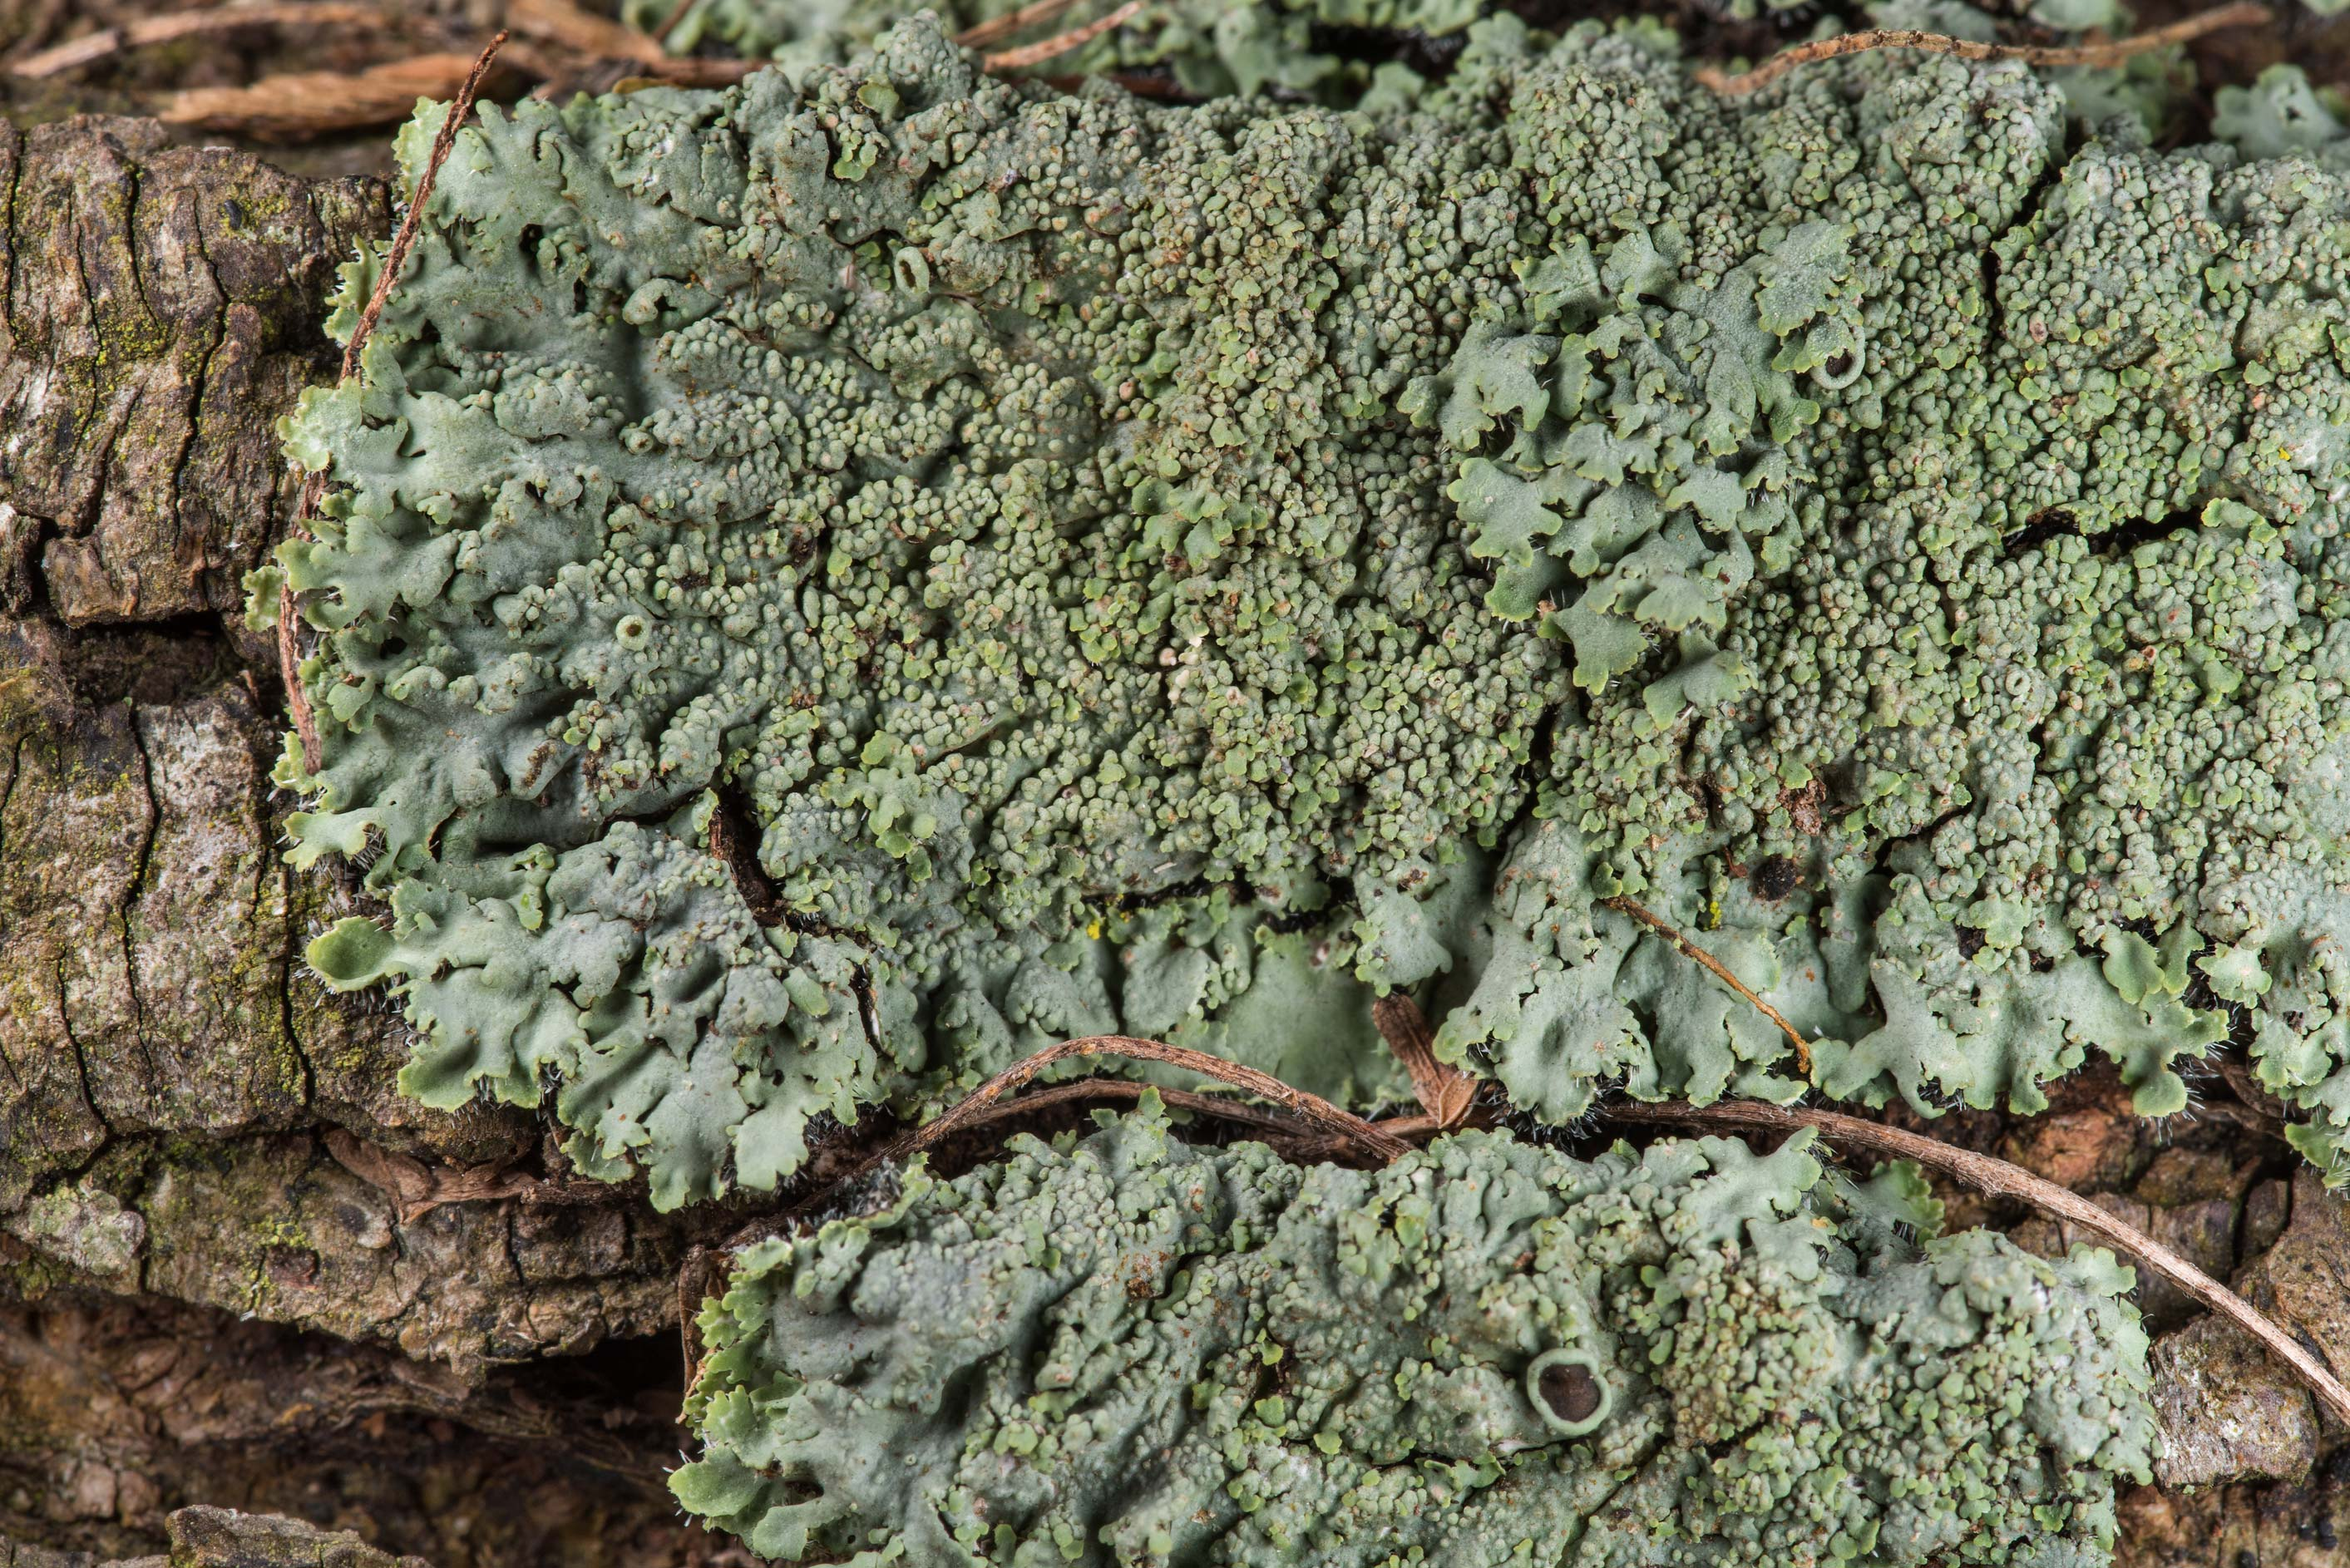 Close up of Phaeophyscia lichen on a large...State Historic Site. Washington, Texas